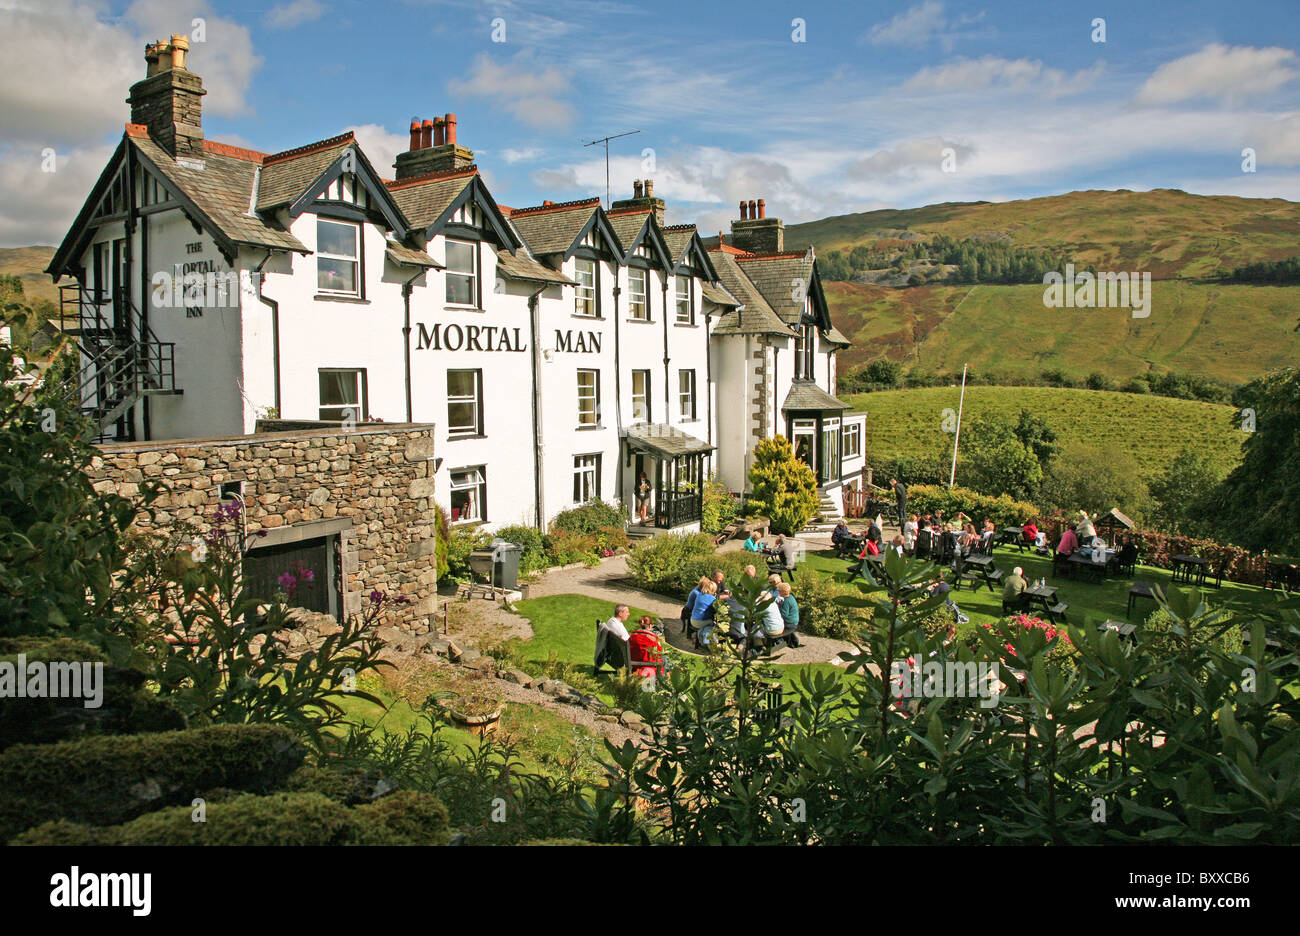 The Mortal man pub, inn or public house at Troutbeck in the English Lake District Cumbria England UK - Stock Image